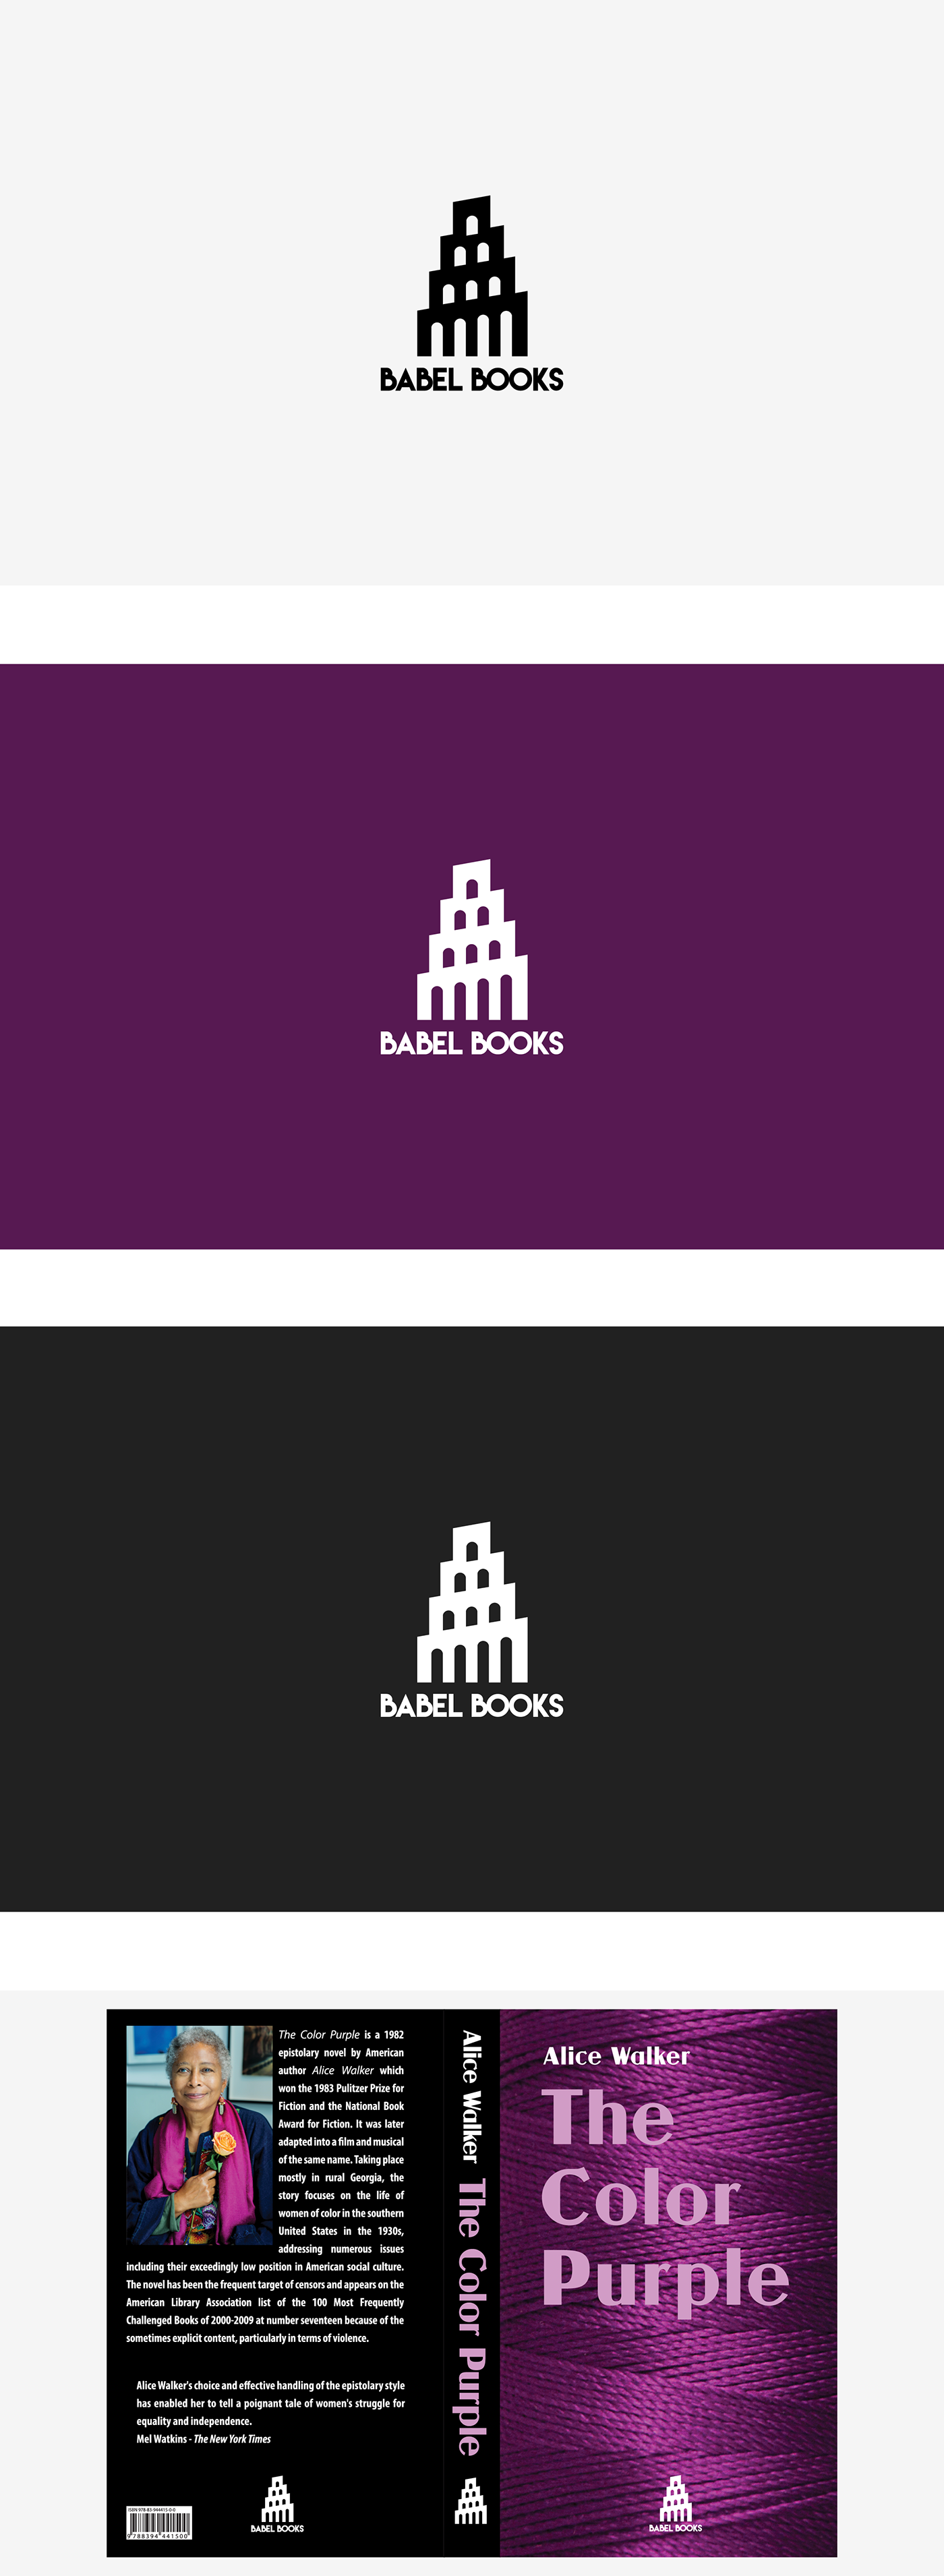 Babel Books Logo The Color Purple Book Cover on Behance